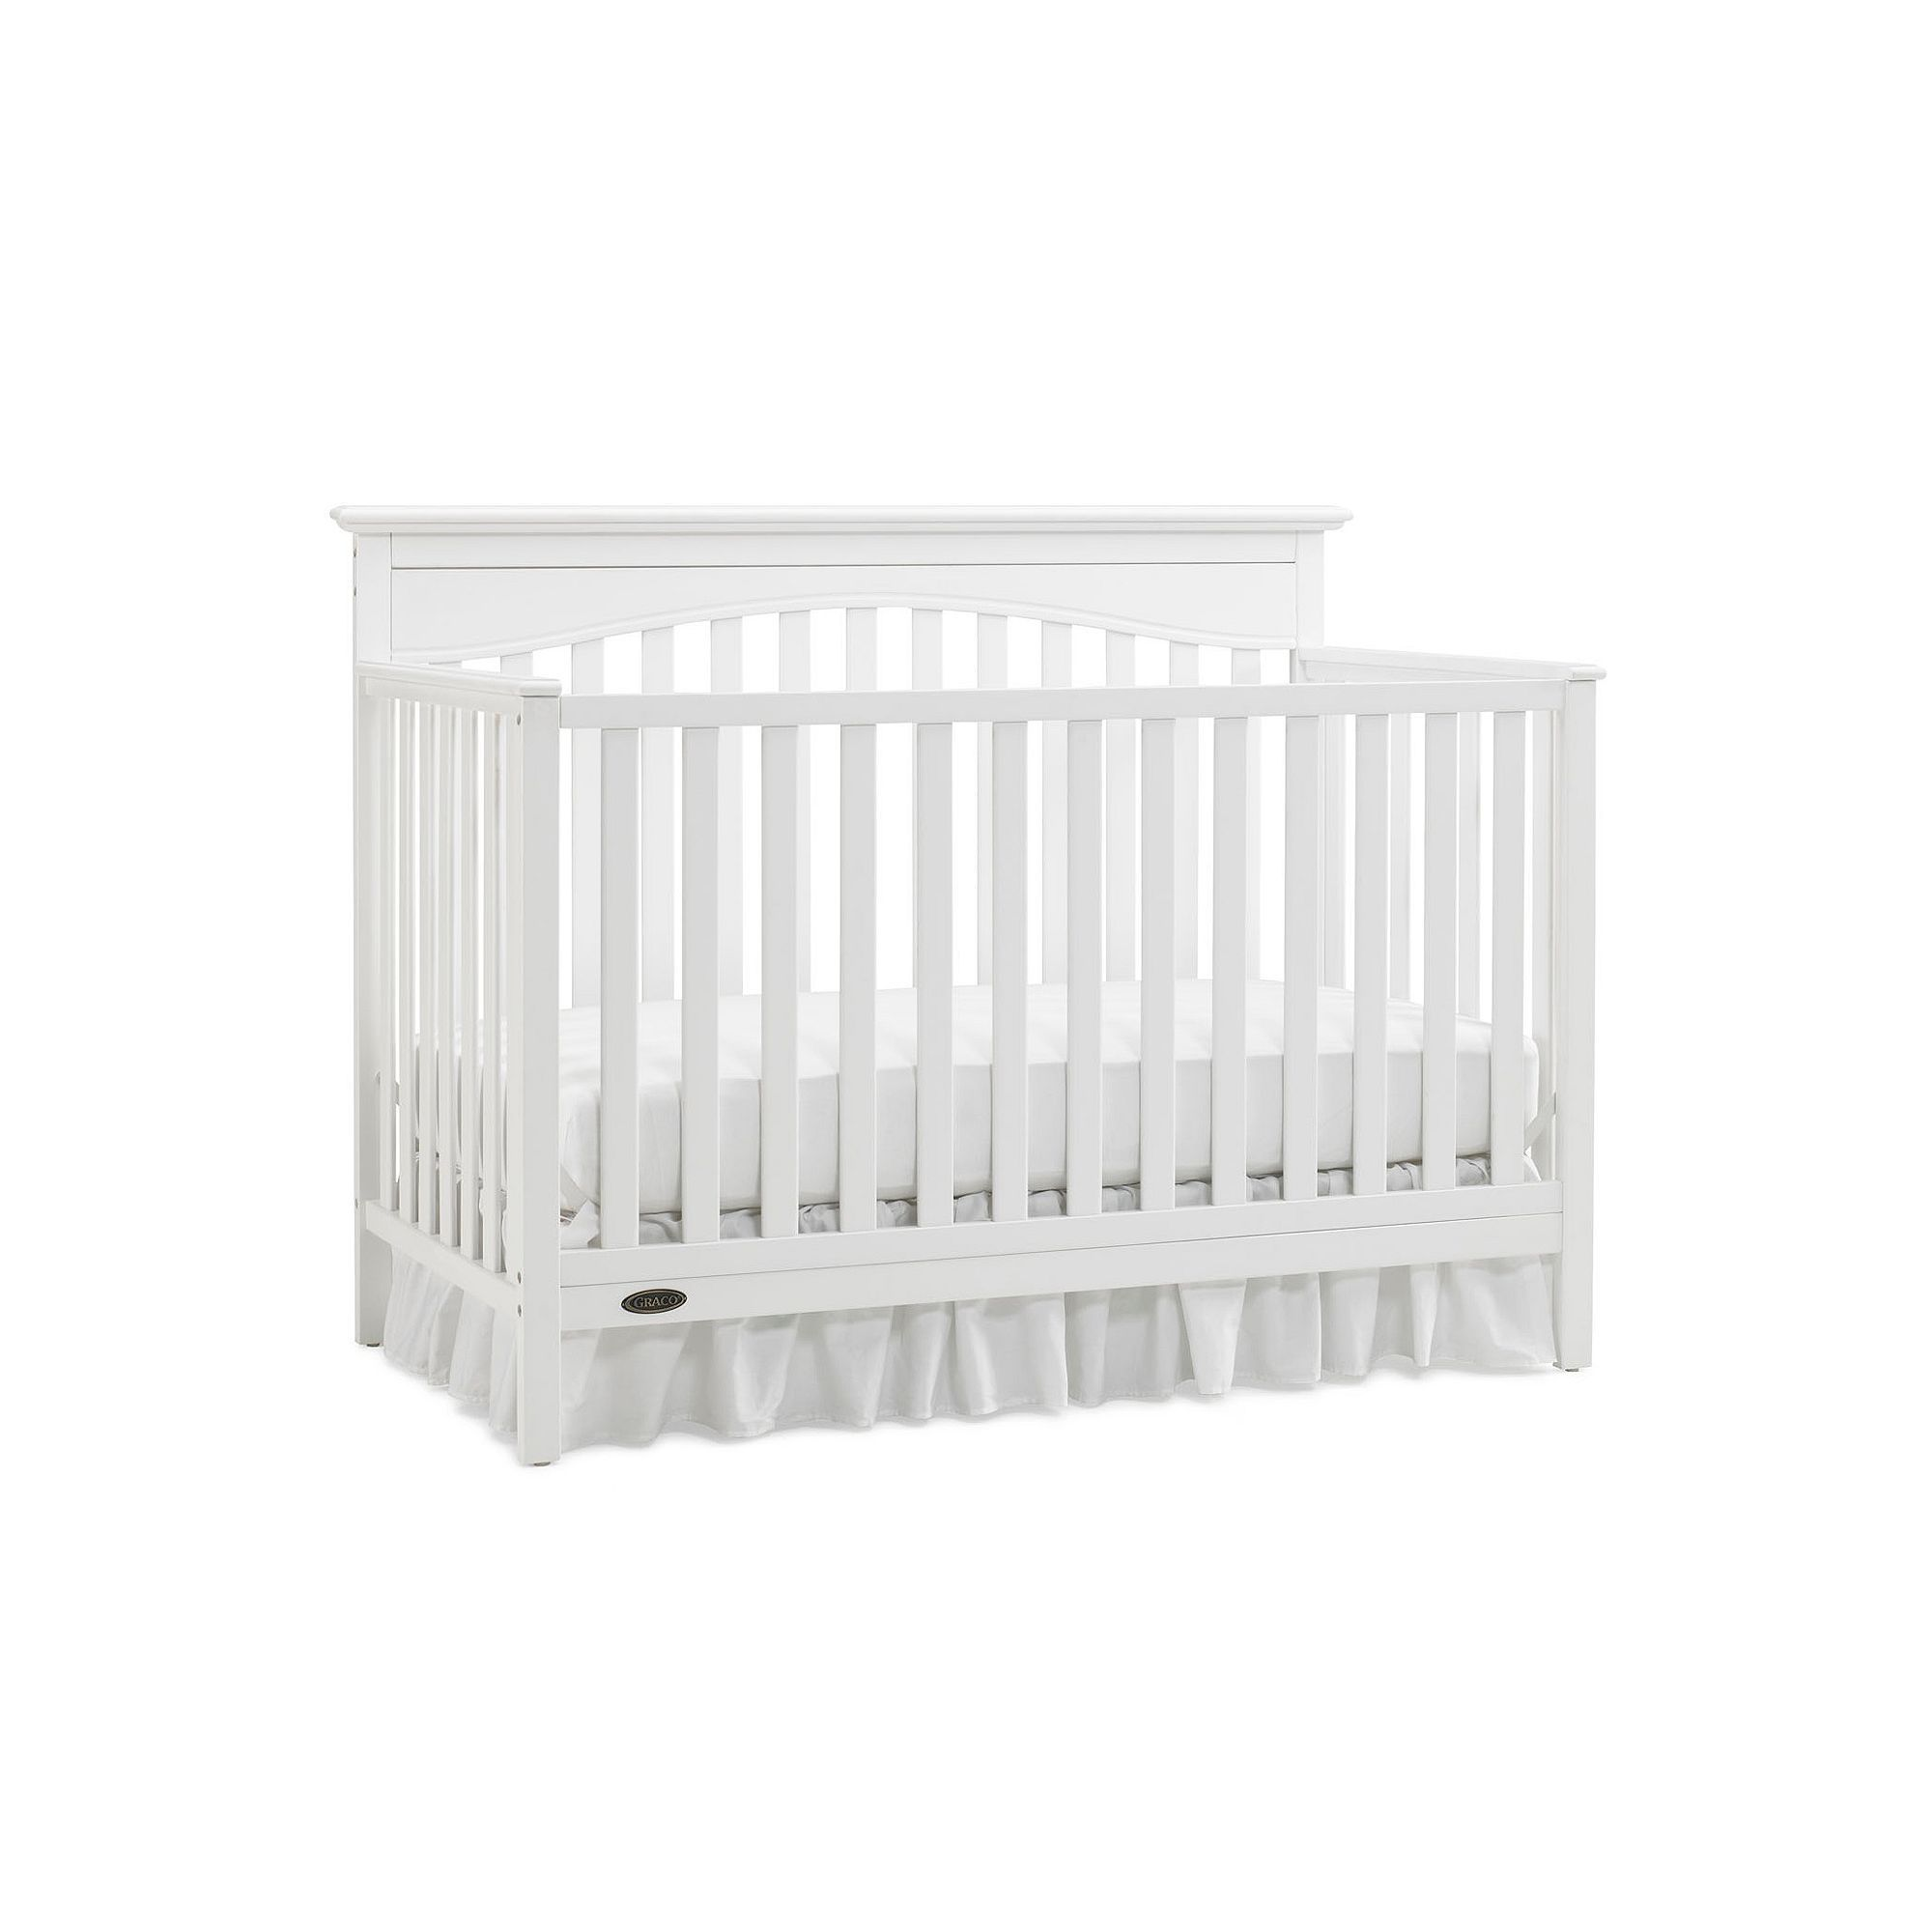 Graco hayden 4 in 1 convertible crib white durable